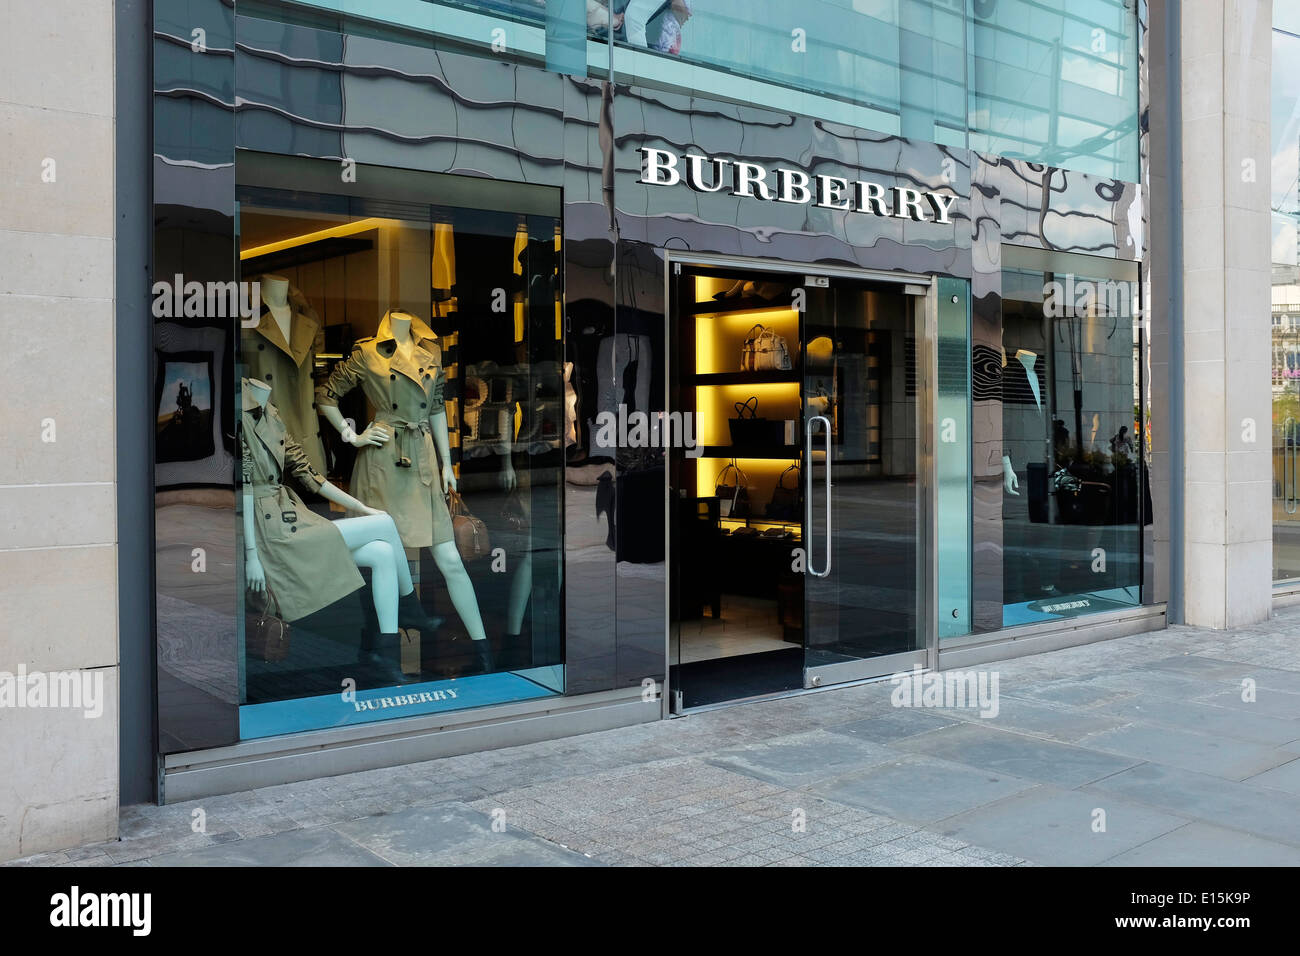 Burberry store front in Manchester city centre UK - Stock Image